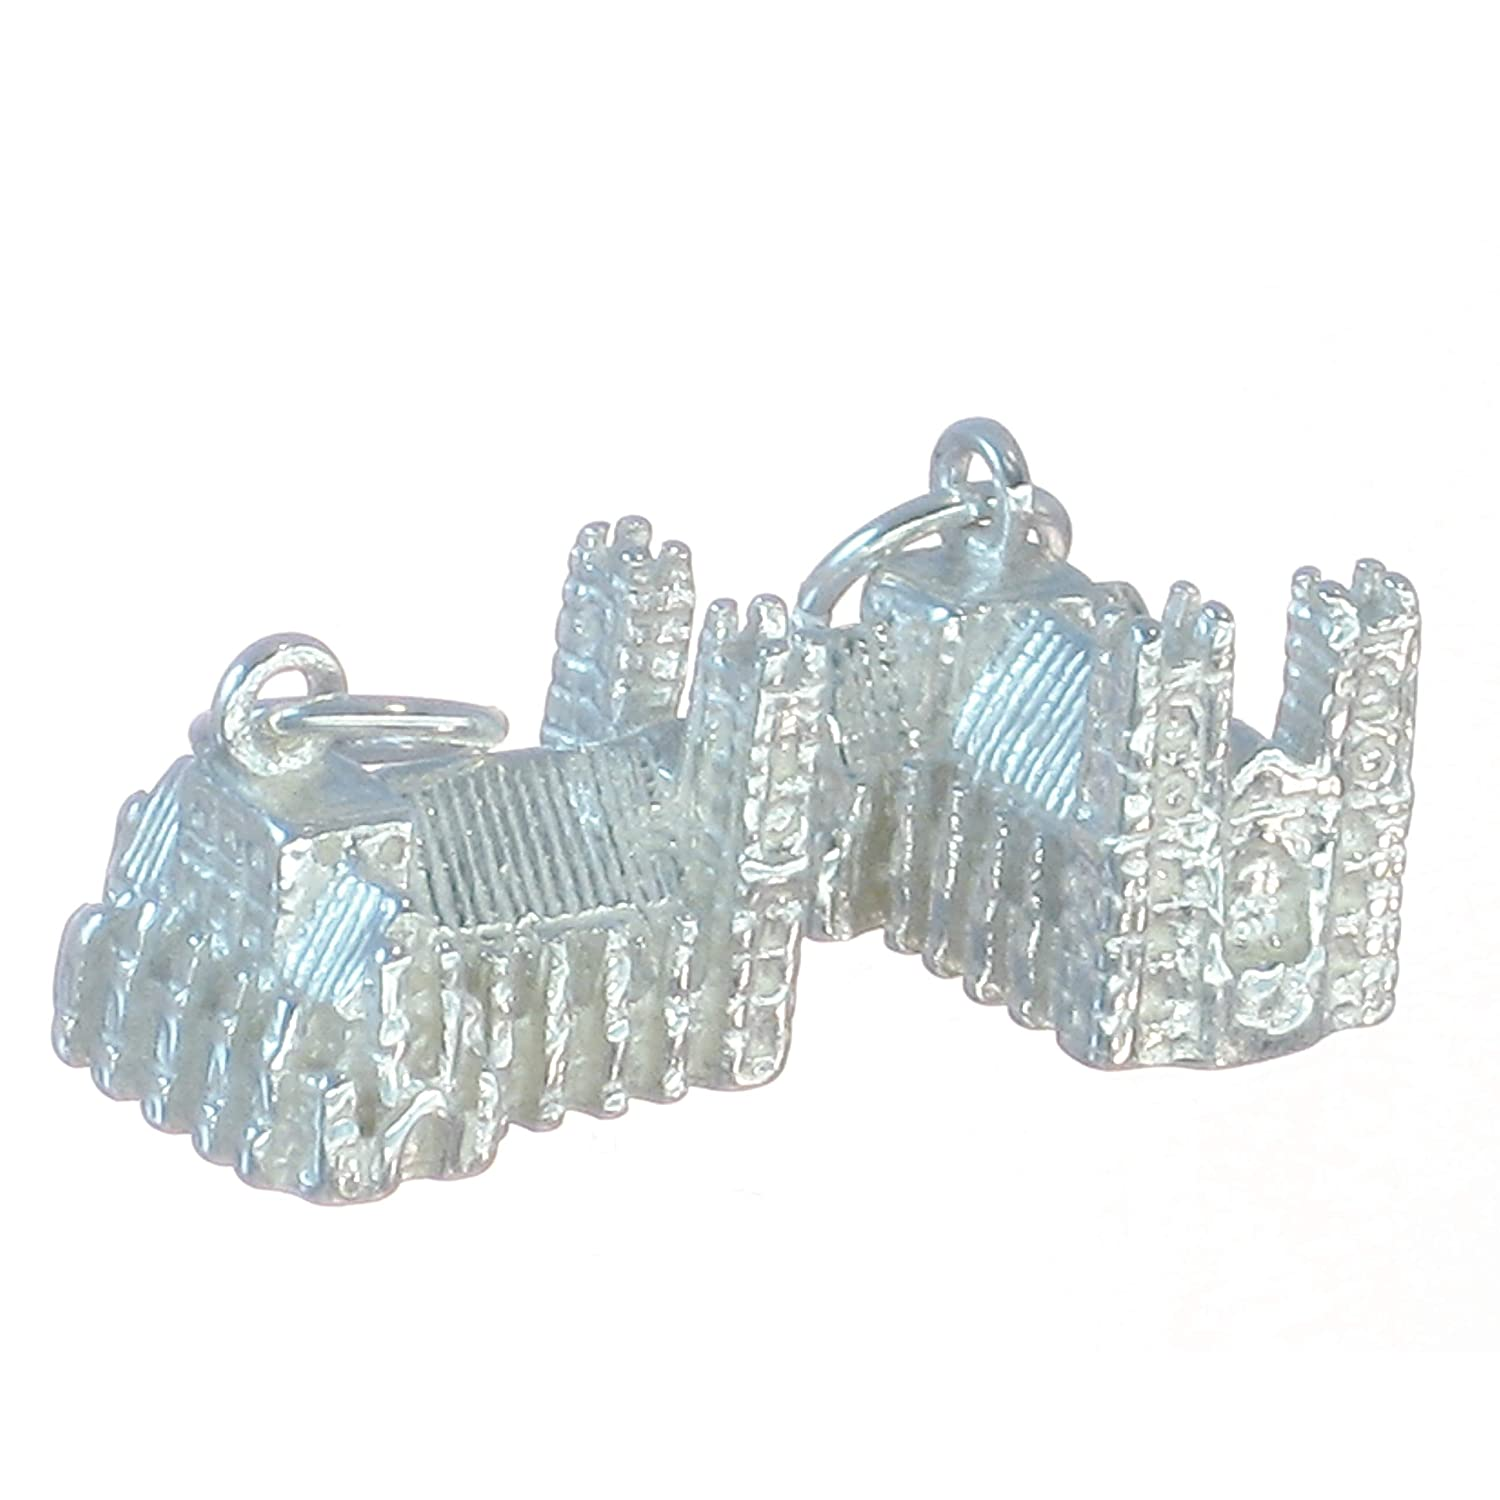 Wedding Cake sterling silver charm .925 x 1 Weddings Cakes Charms BJ2050